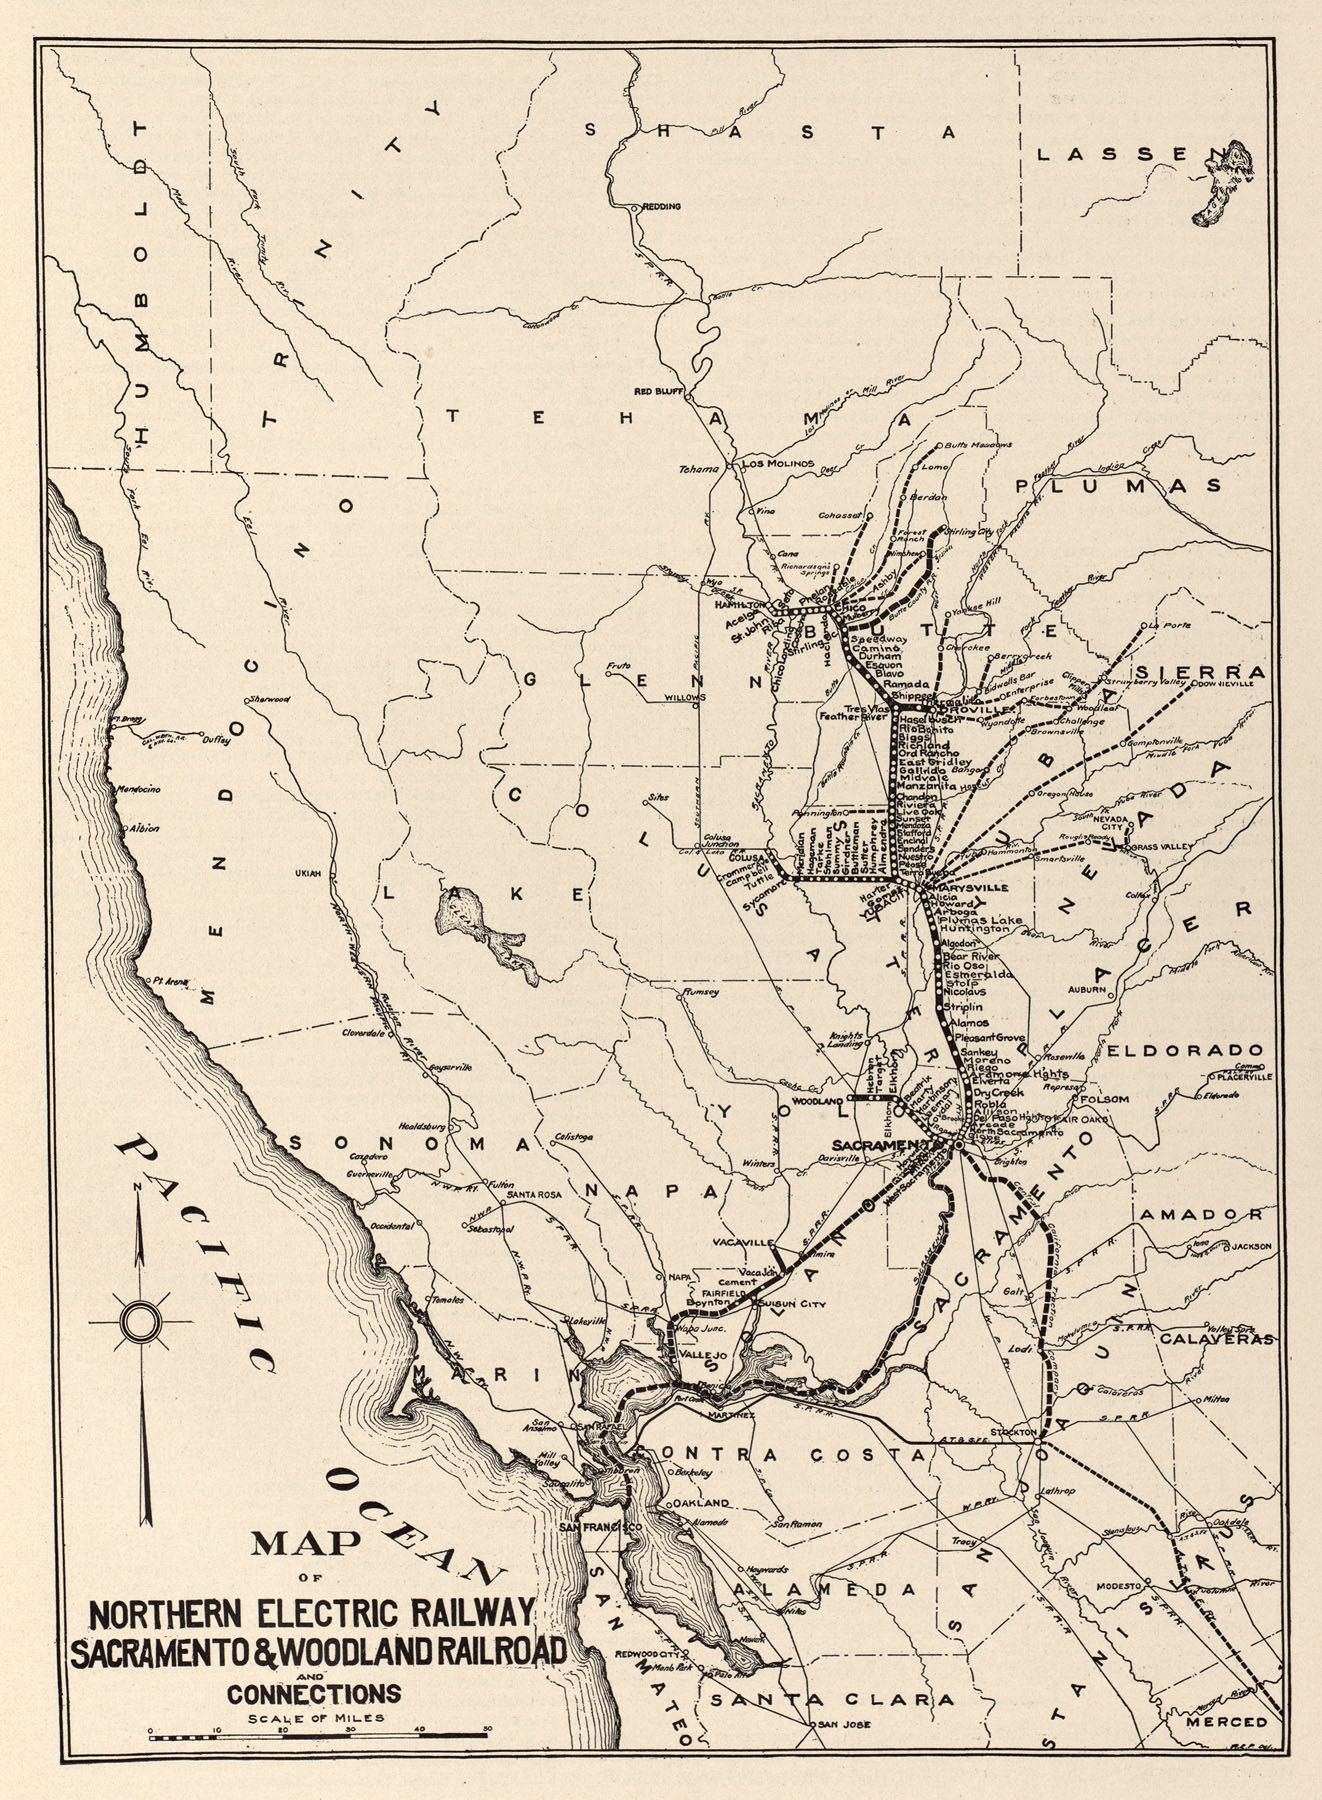 txu-oclc-6445490-electric_railway-chico-1913 Sacramento Central Pacific Railroad Map on central pacific engine sacramento, arcade railroad station sacramento, southern pacific sacramento, central pacific railway, paintings of bridge in sacramento, sutter s fort sacramento,